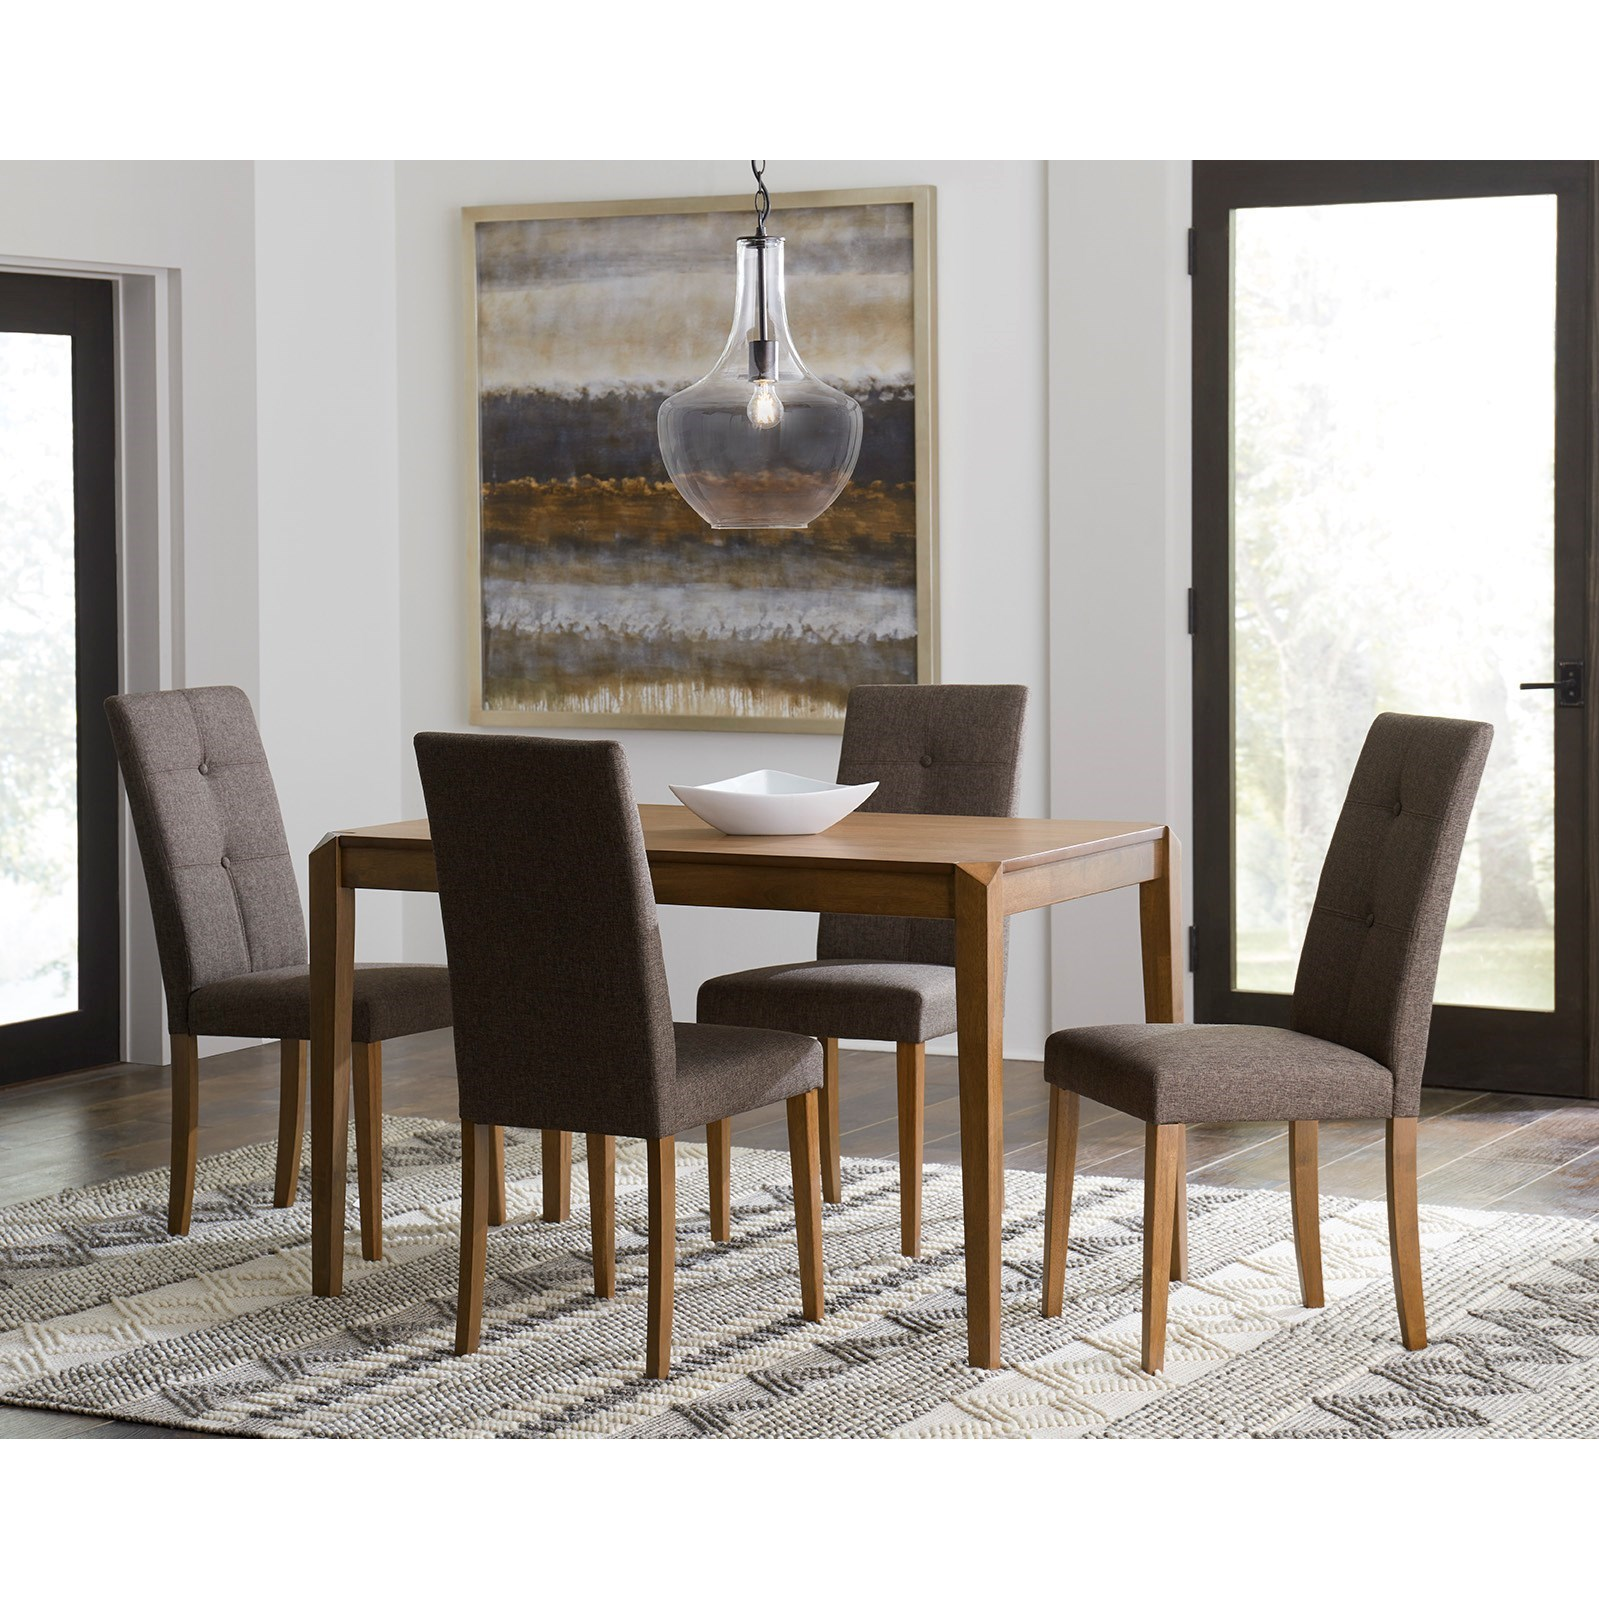 Arcade 5-Piece Table and Chair Set by Progressive Furniture at Simply Home by Lindy's